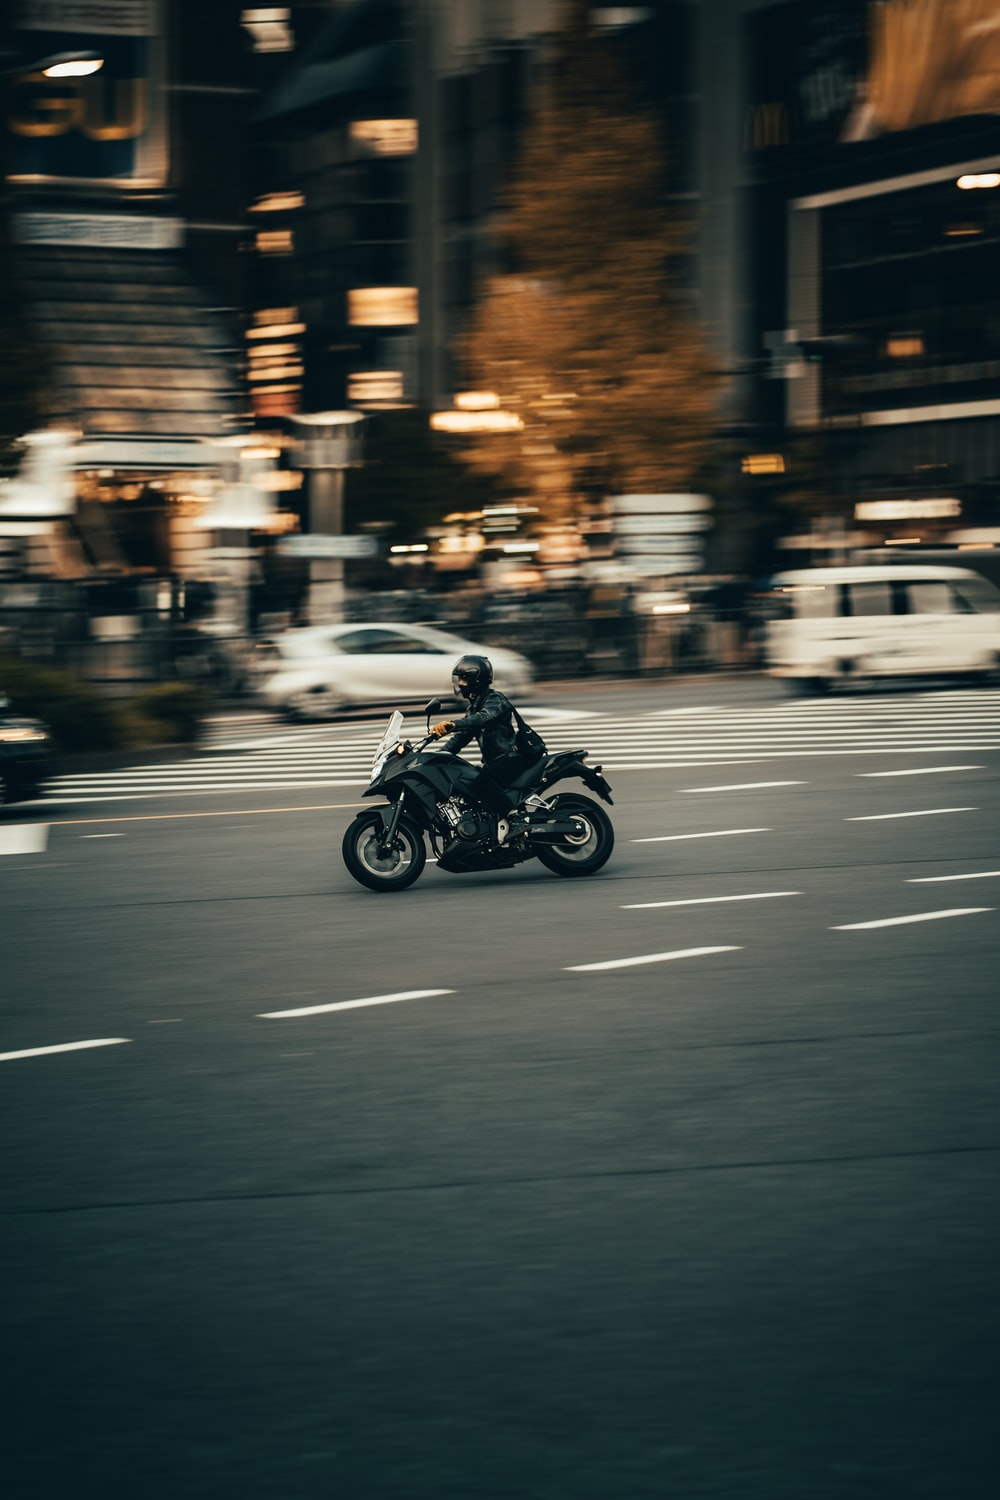 photography of person riding motorcycle